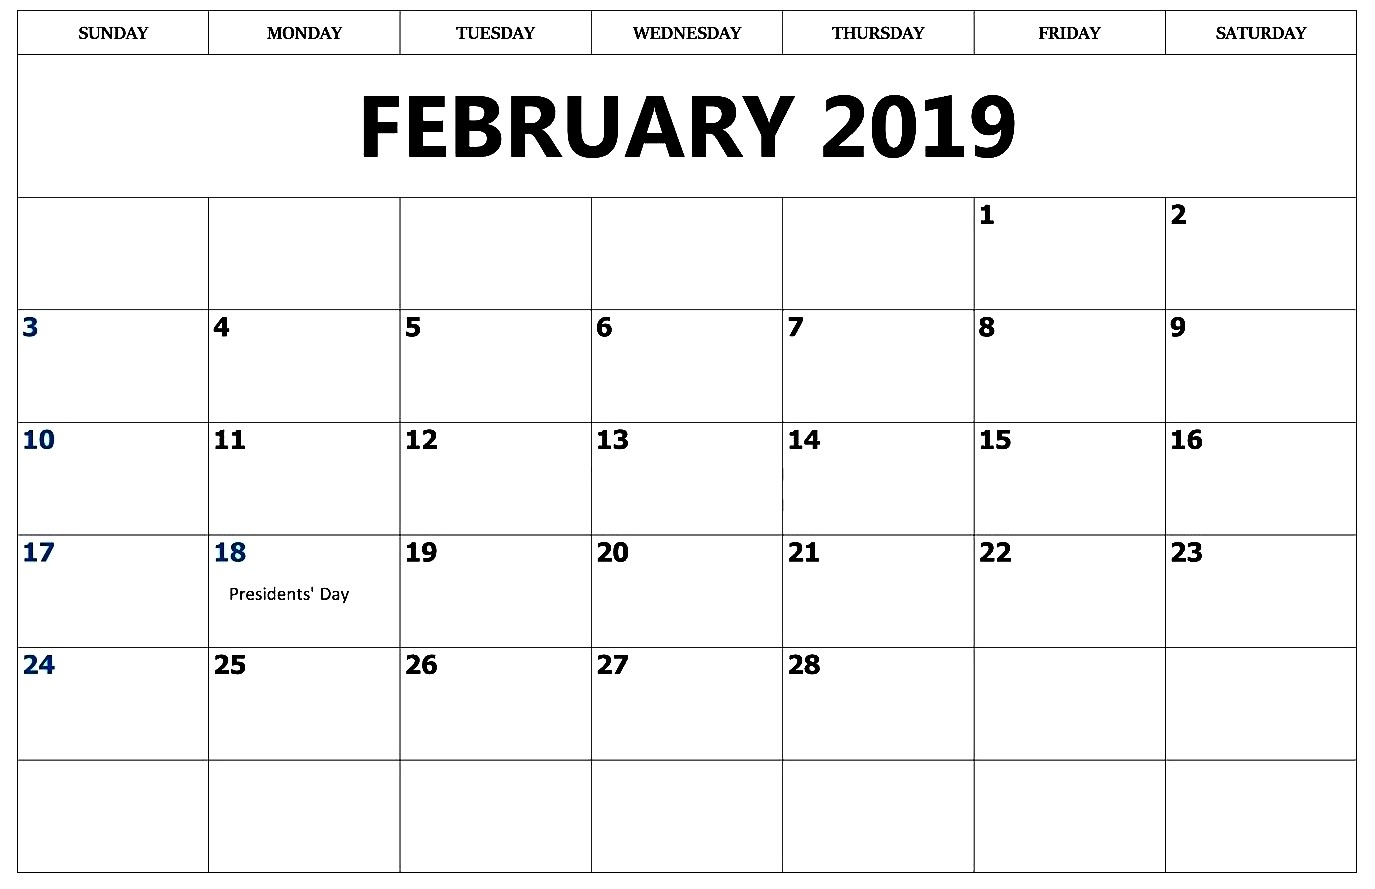 february 2019 calendar cute best calendar printable pdf template::February 2019 Calendar with Notes